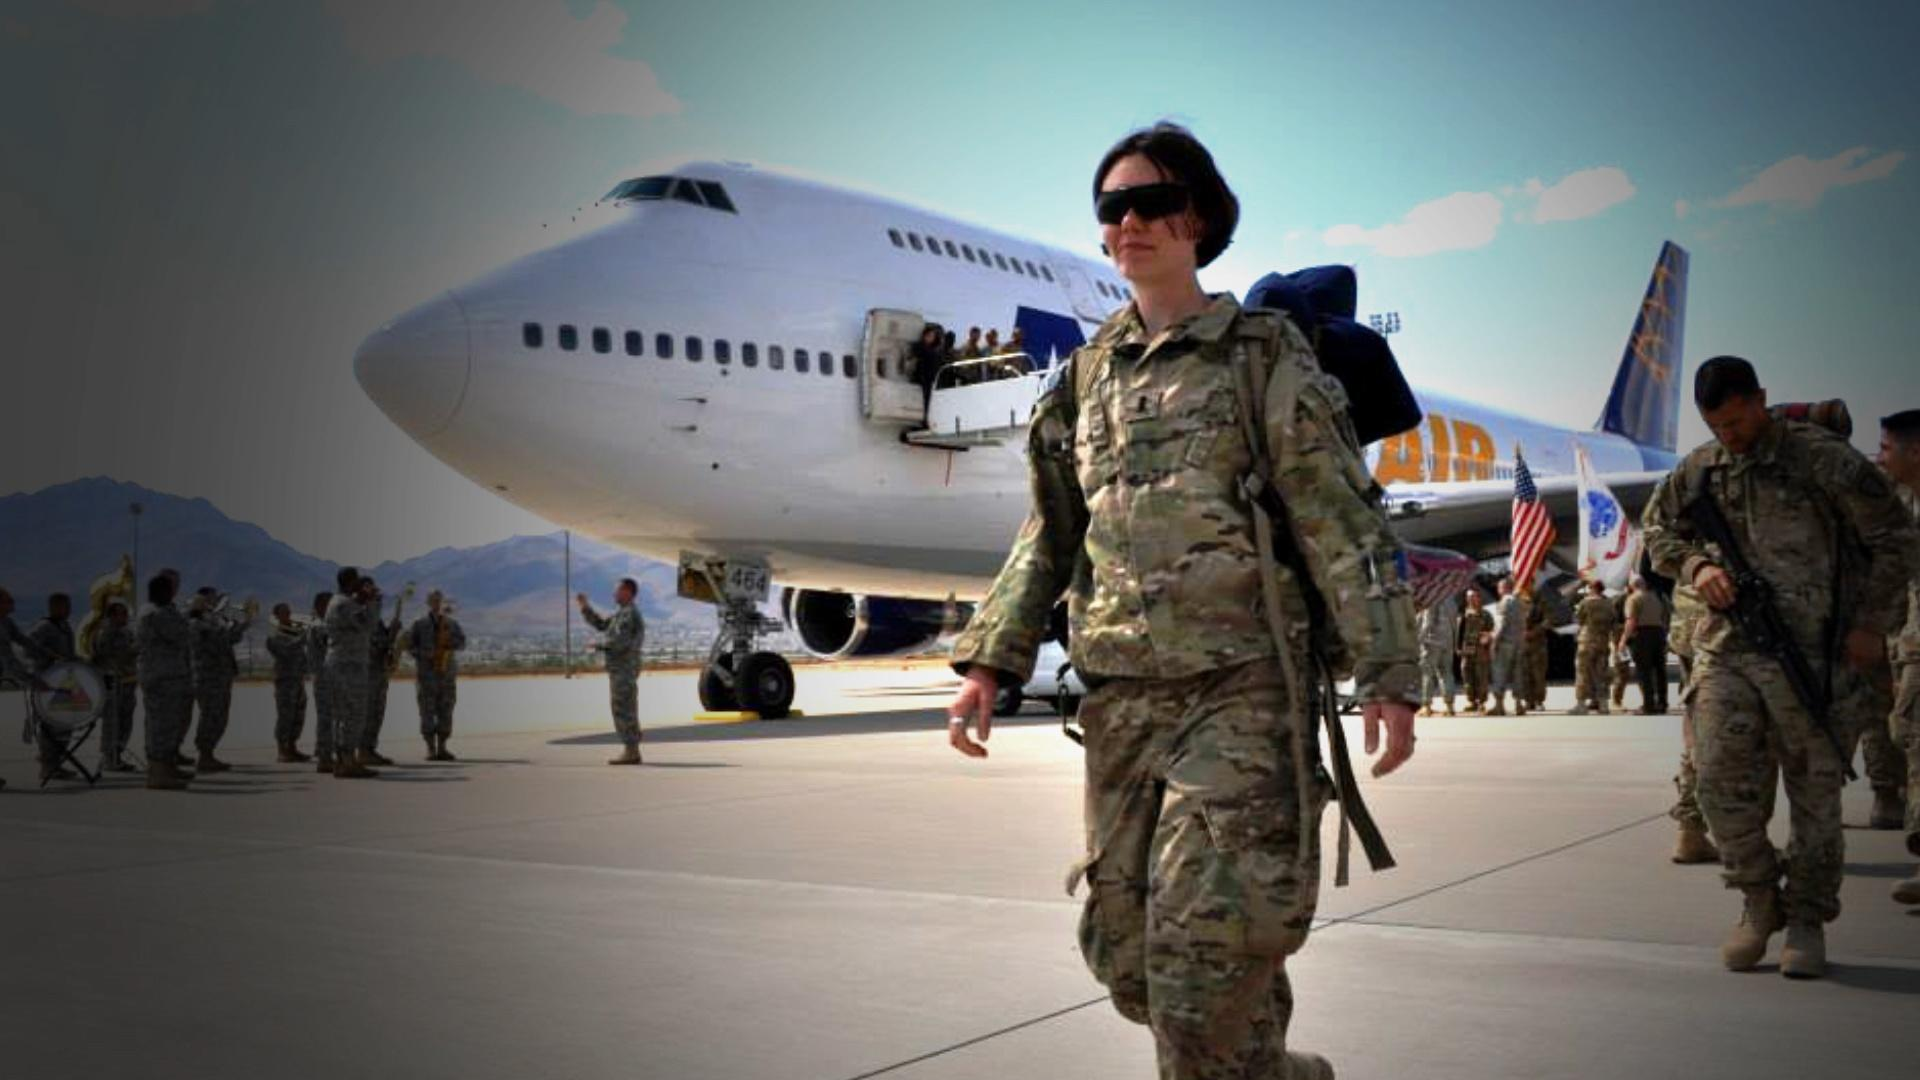 Soldier On: Life After Deployment